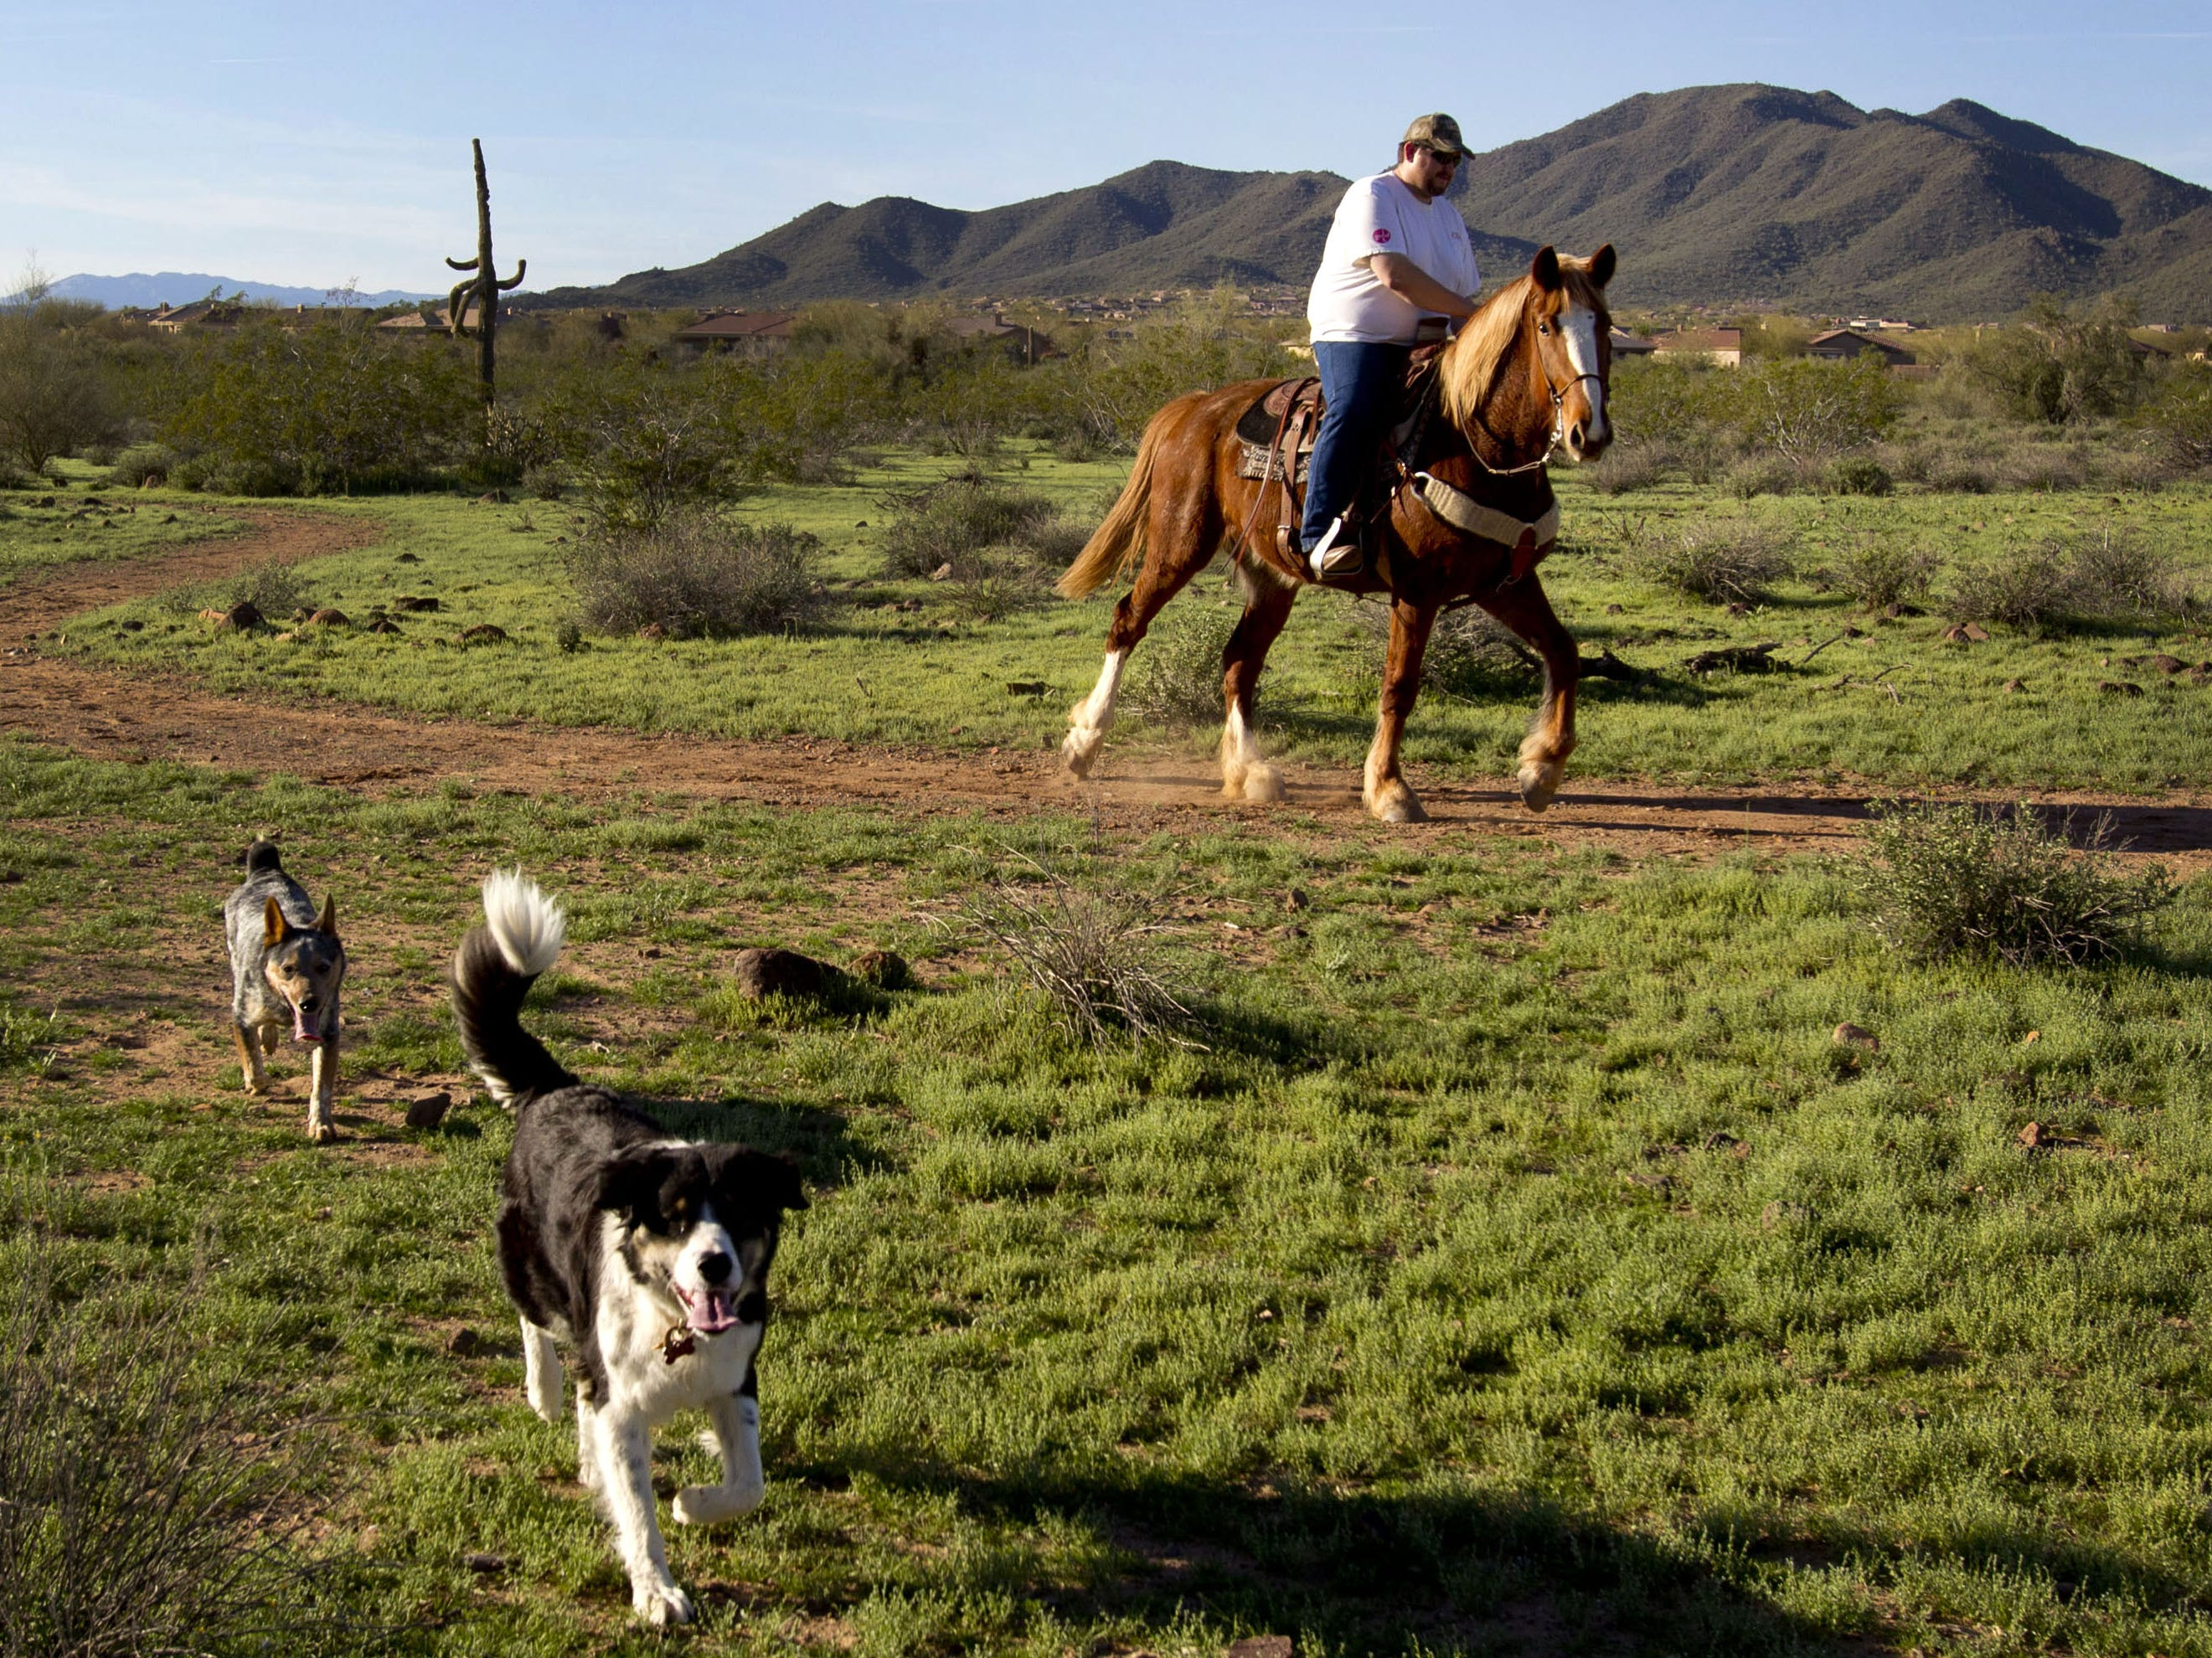 James Gillespie rides Shine on the Maricopa Trail with his dogs Jango (back left) and Roxy near the Anthem trailhead in 2013.